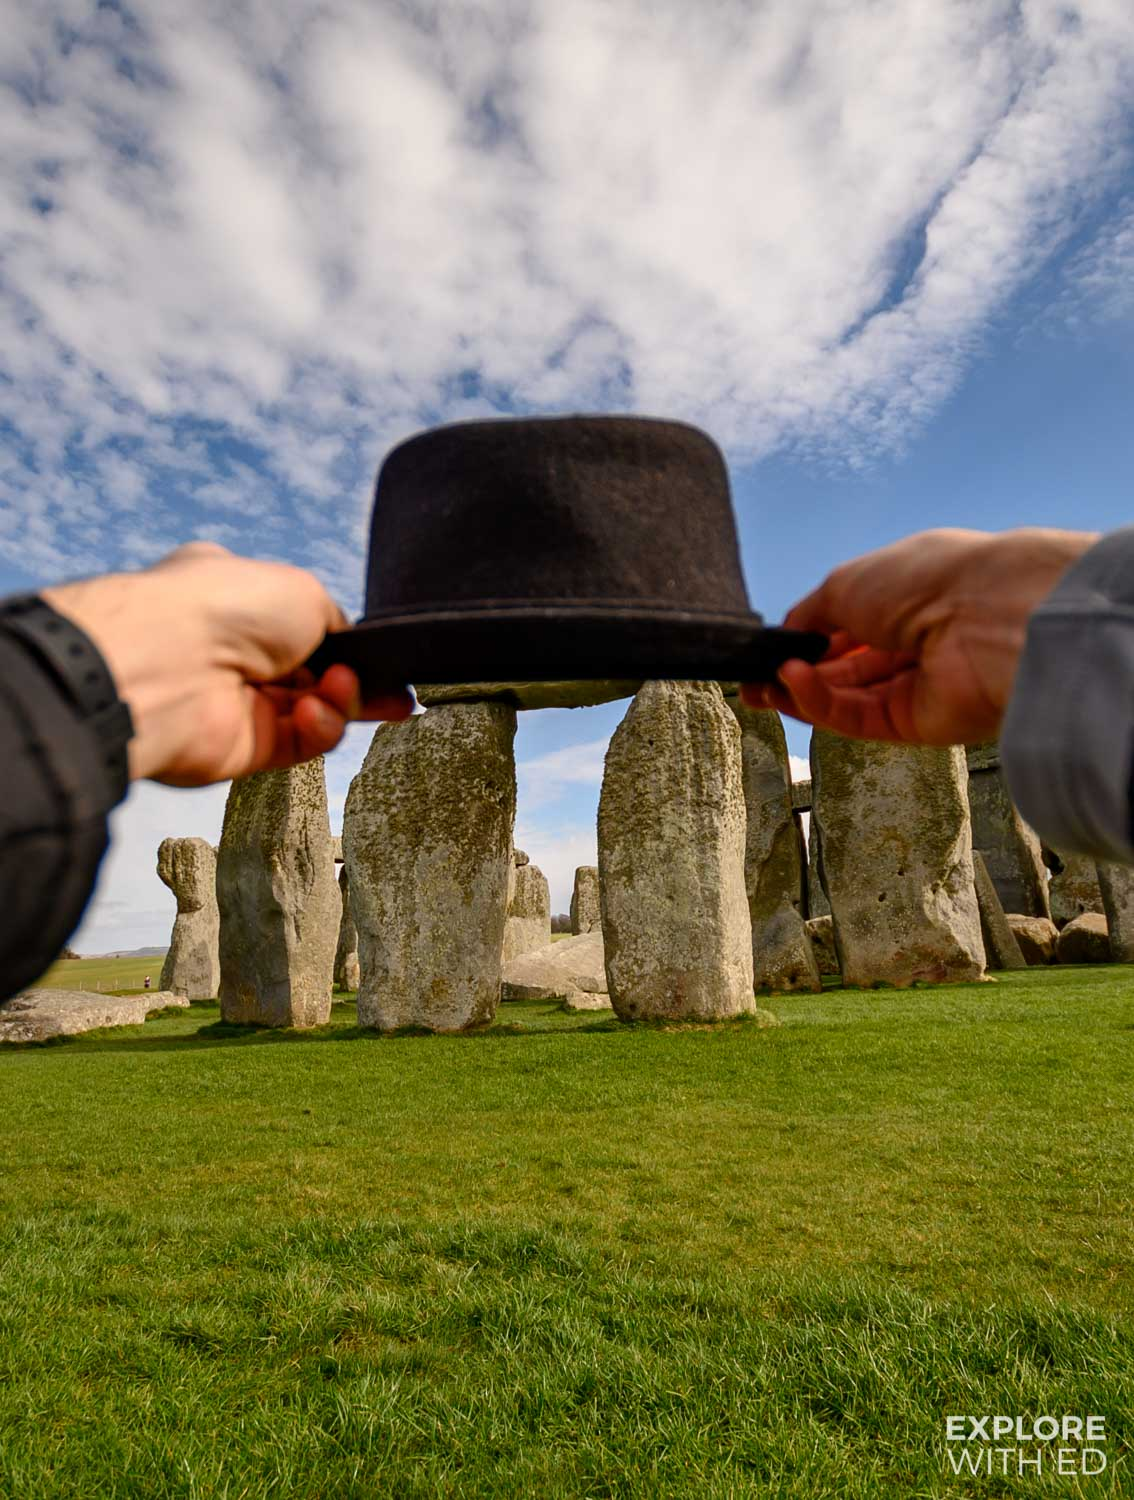 Quirky image of hat on Stonehenge